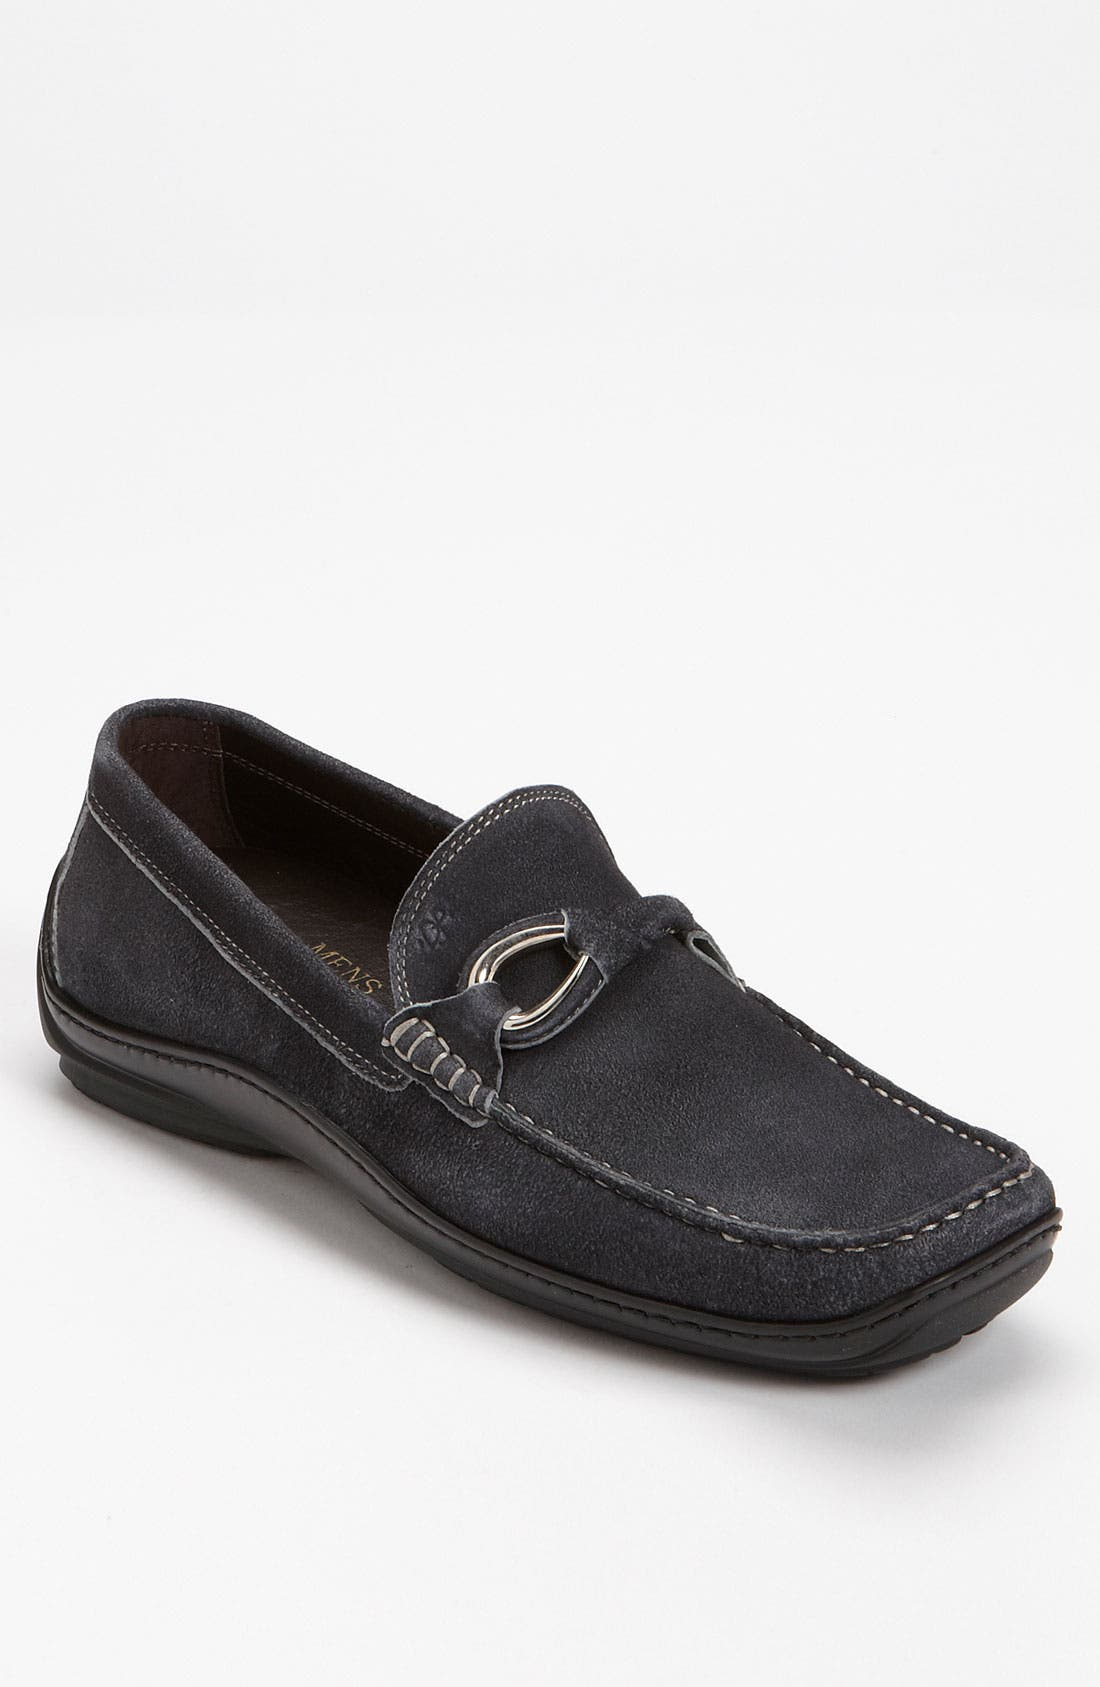 Alternate Image 1 Selected - Donald J Pliner 'Edlyn' Loafer